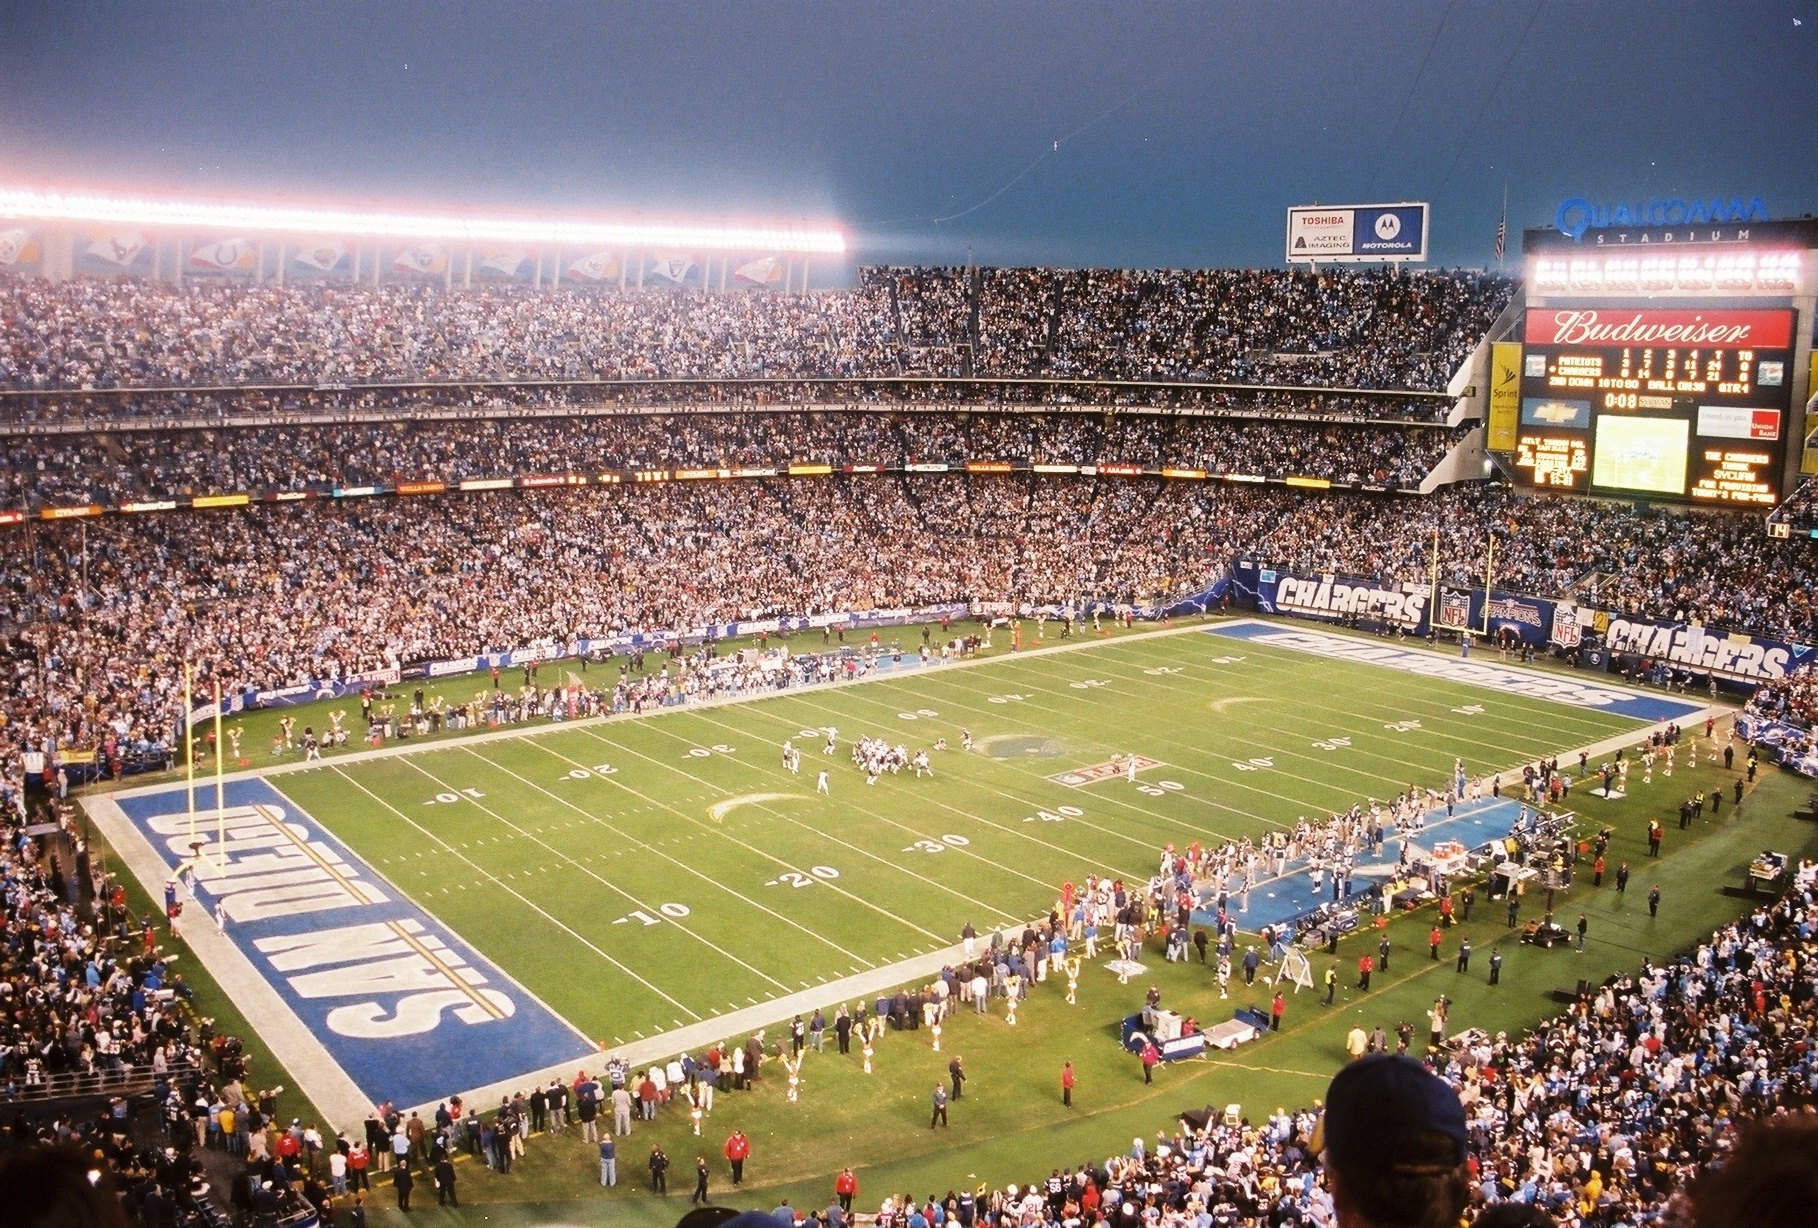 Qualcomm Stadium, home of the San Diego Chargers who have made one Super Bowl appearance in NFL history.